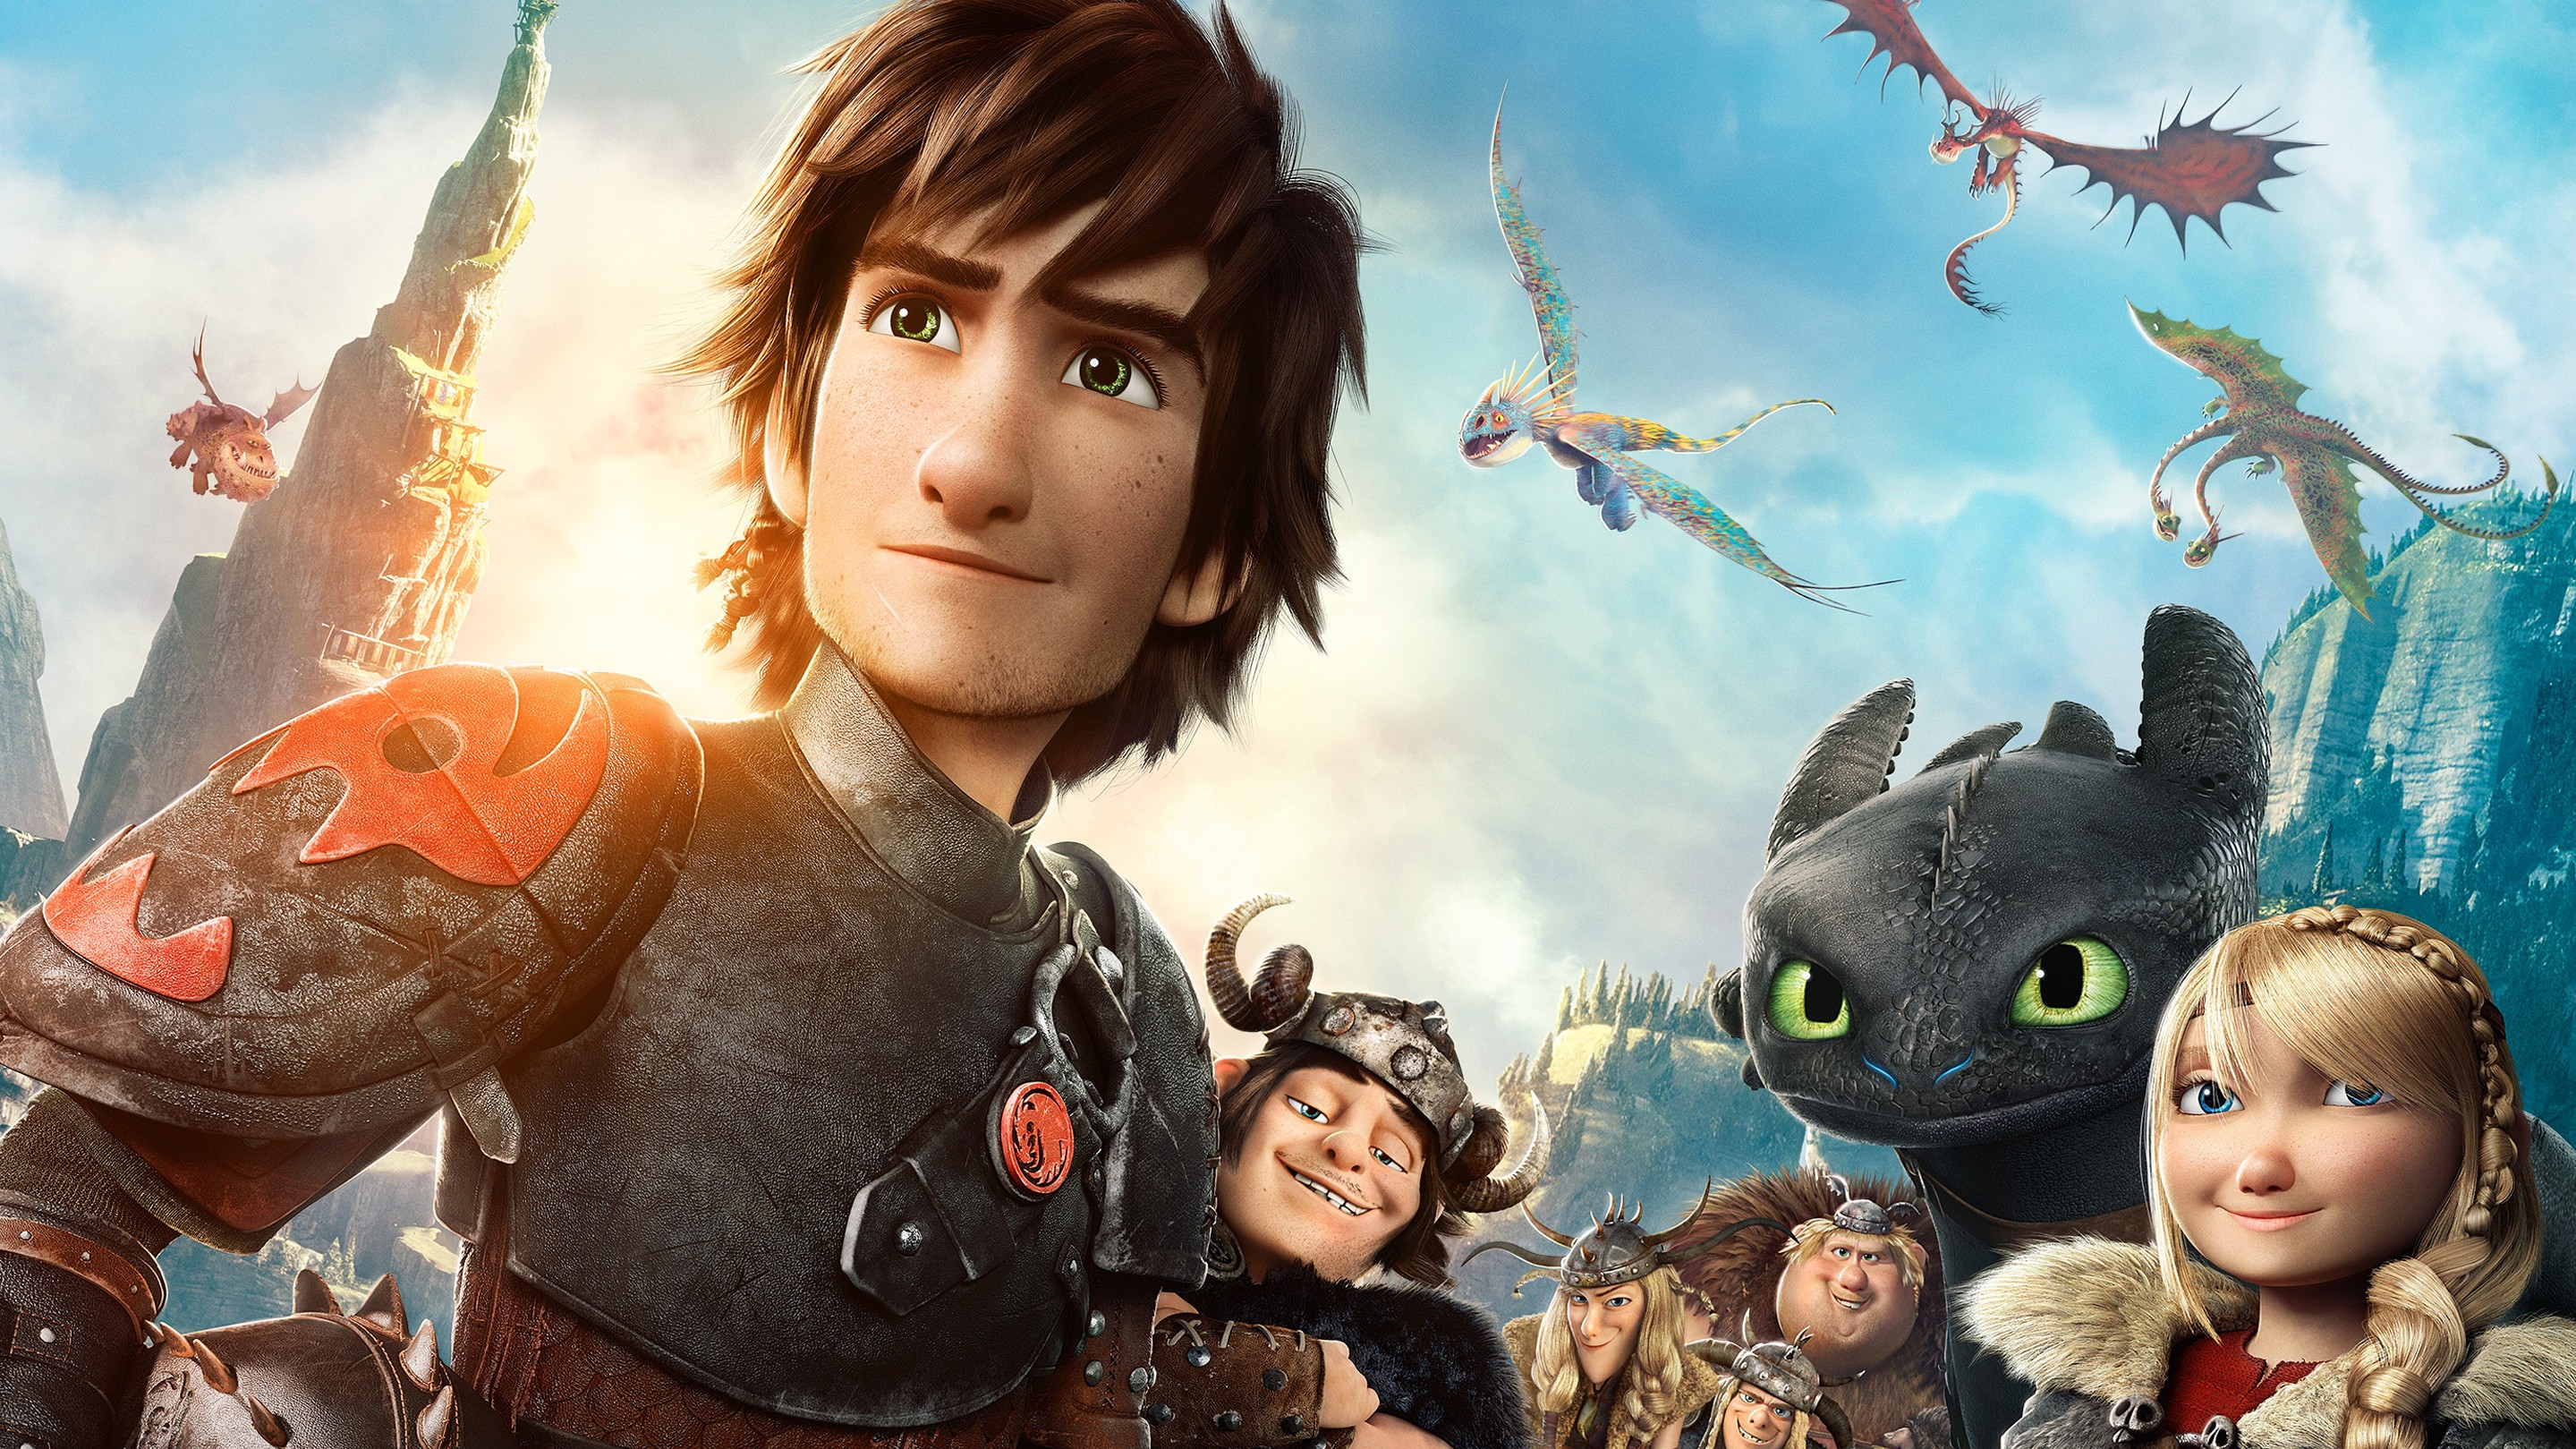 How to Train Your Dragon 12 + 12 more genre movies and shows